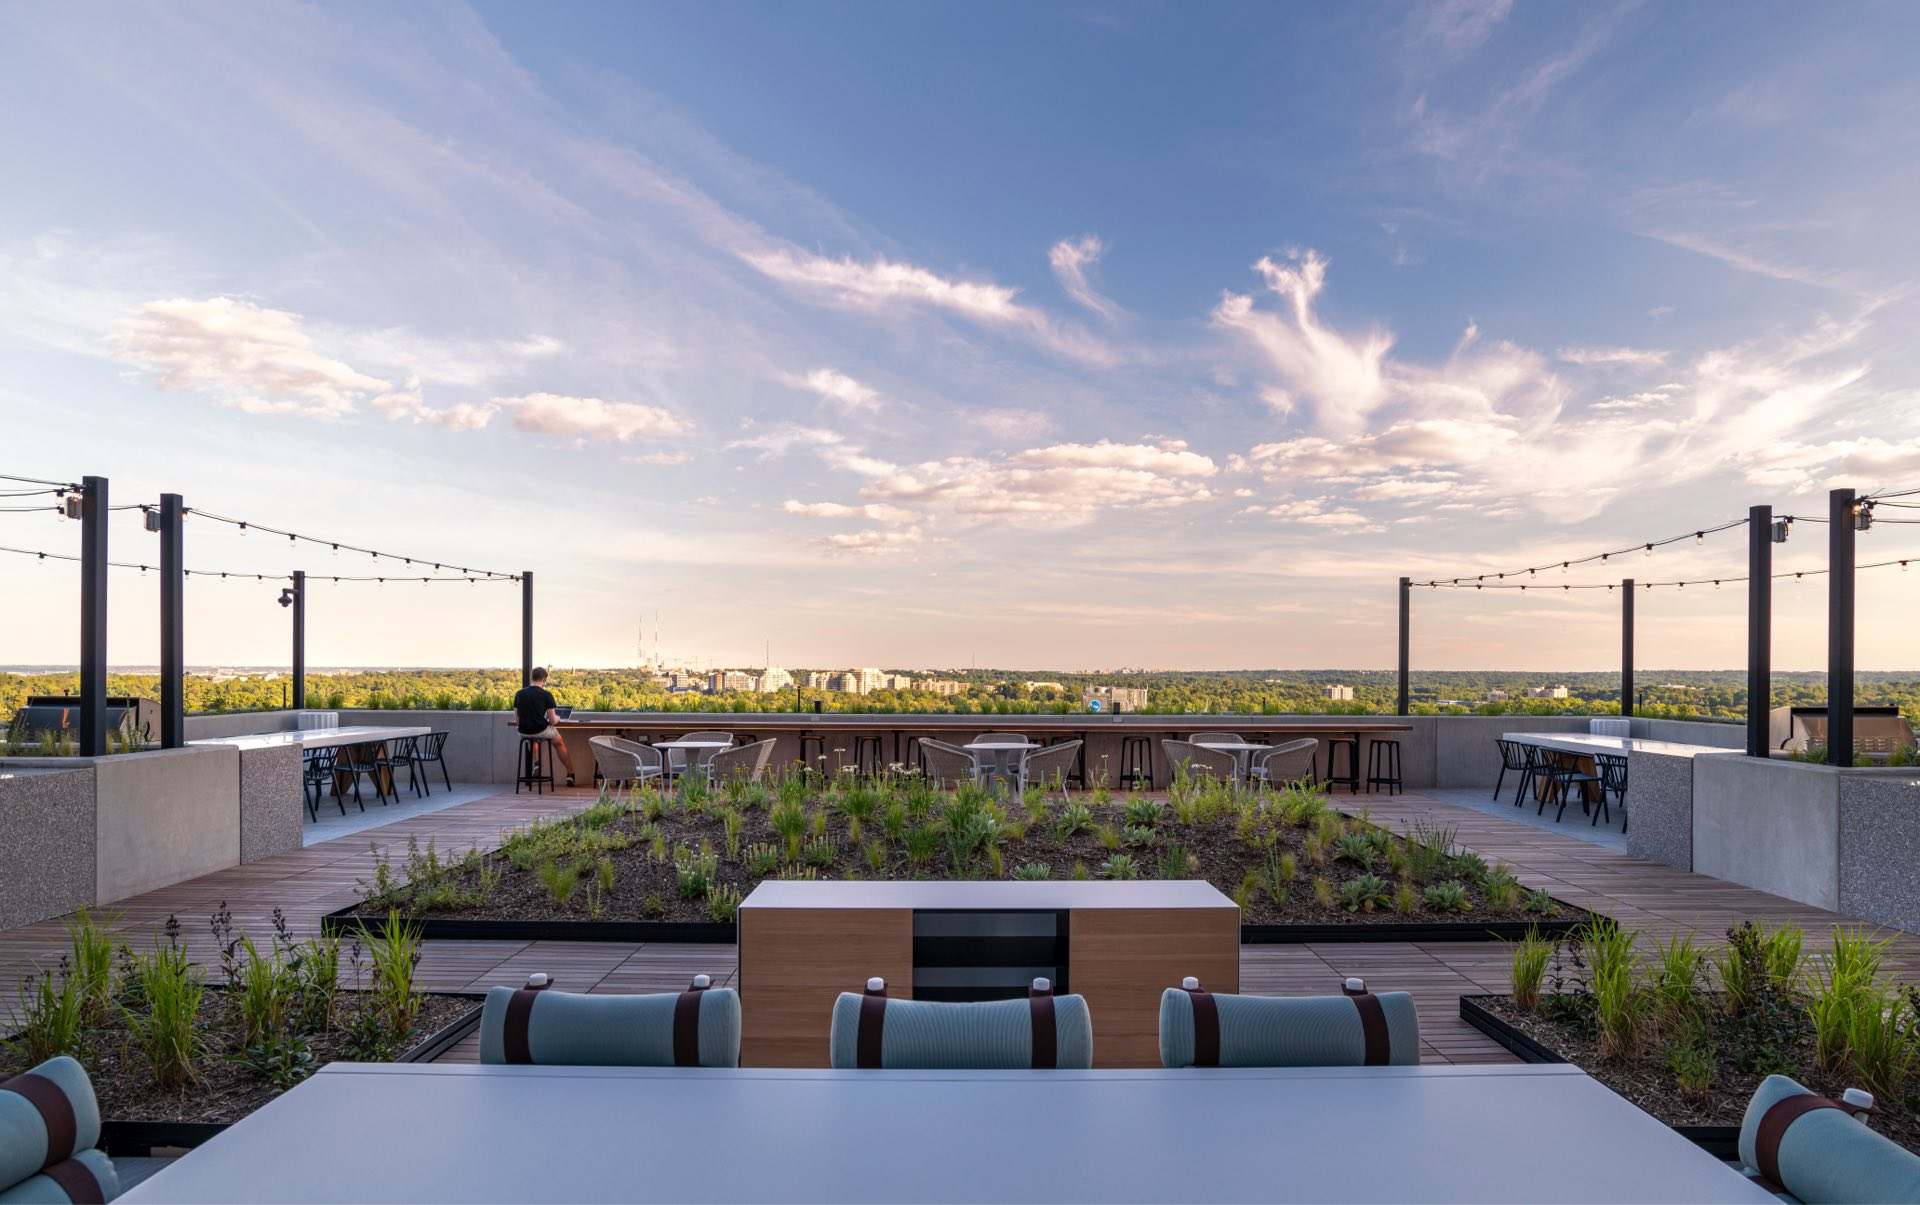 Surrounded by lushly landscaped green space, lounge seating, and grilling stations.